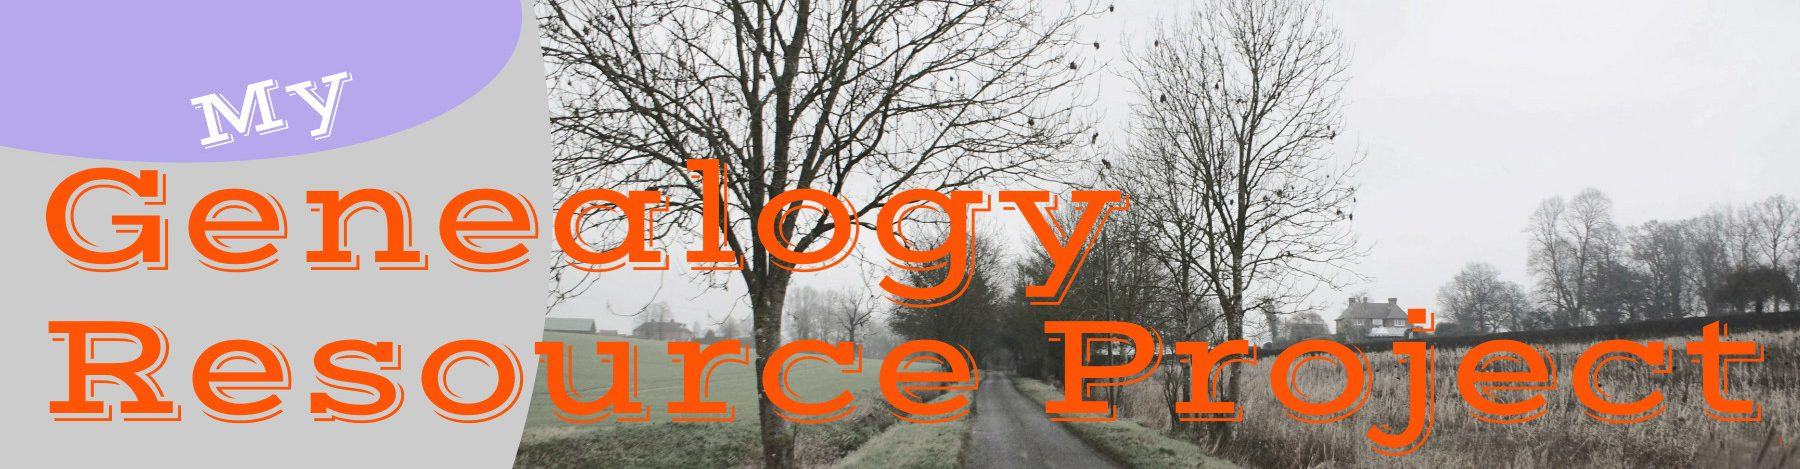 John Pope's Genealogy Research Project